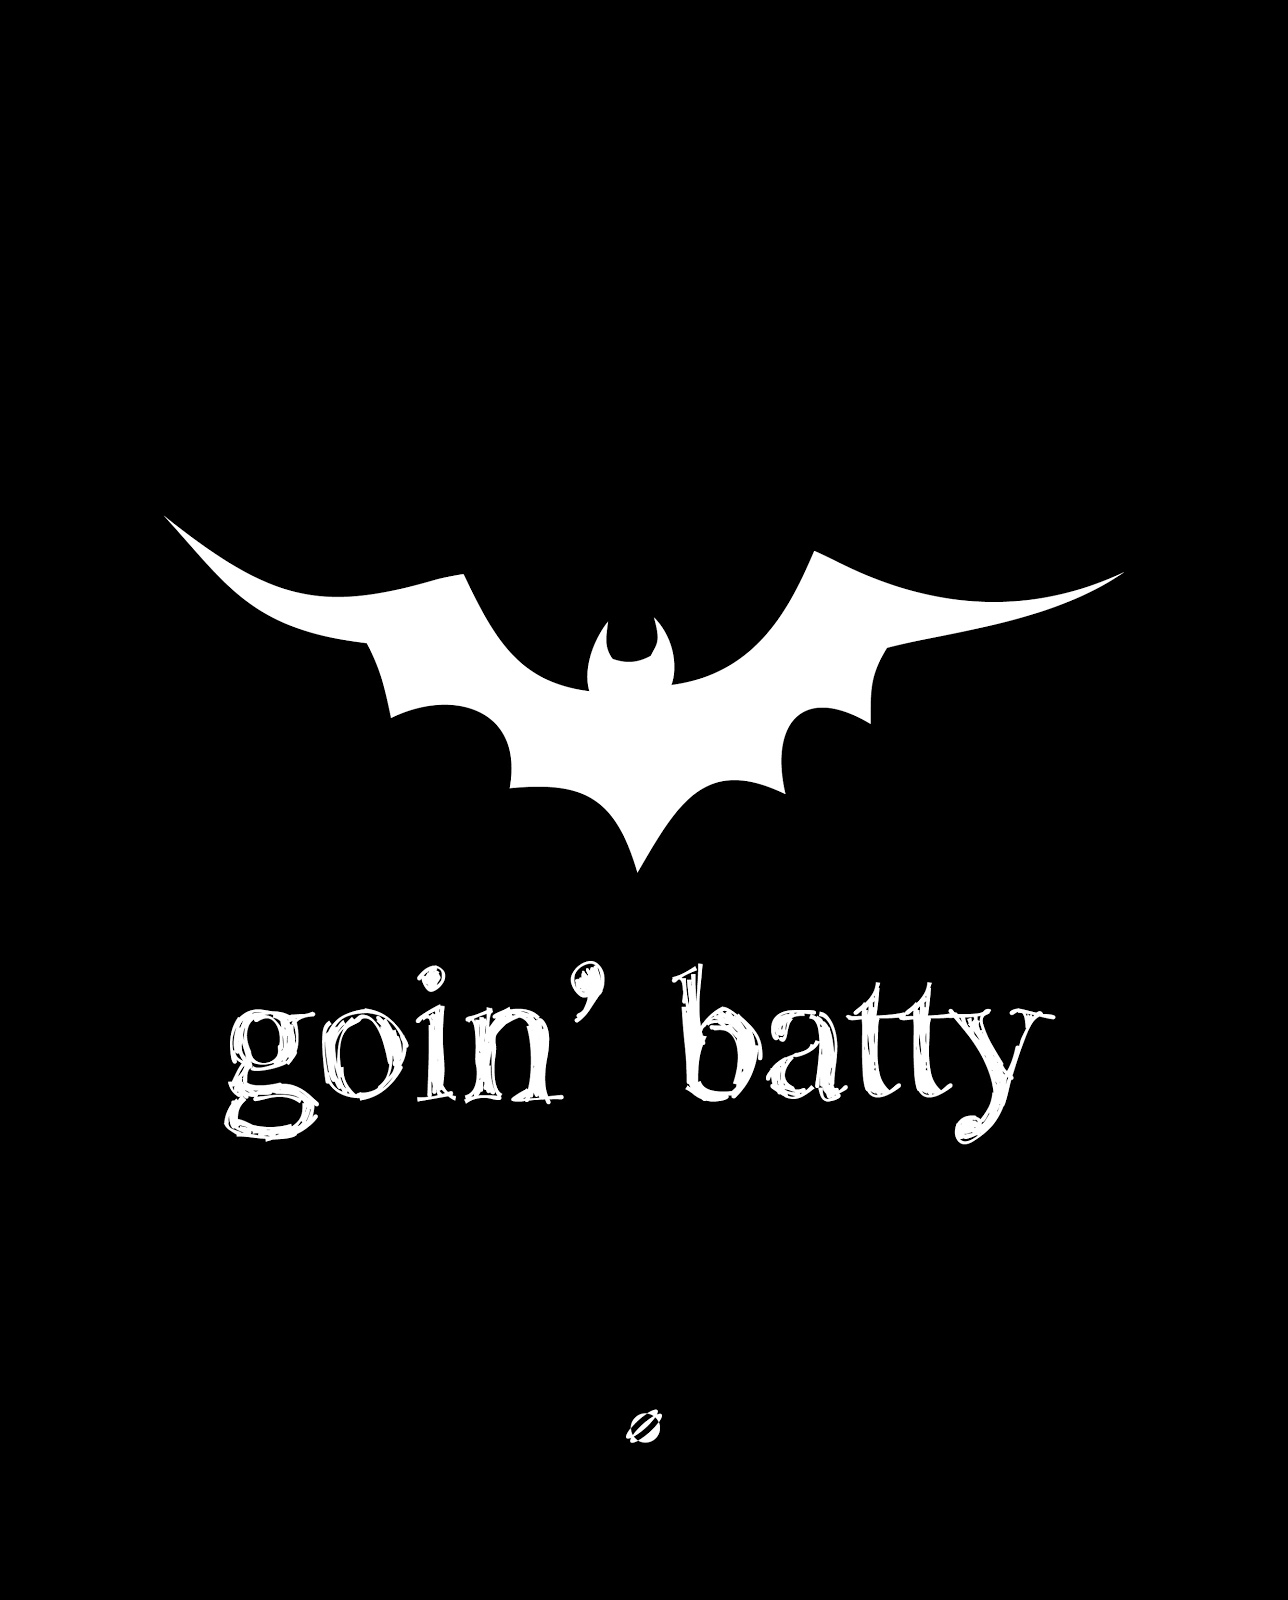 LostBumblebee 2013 - Goin' Batty!